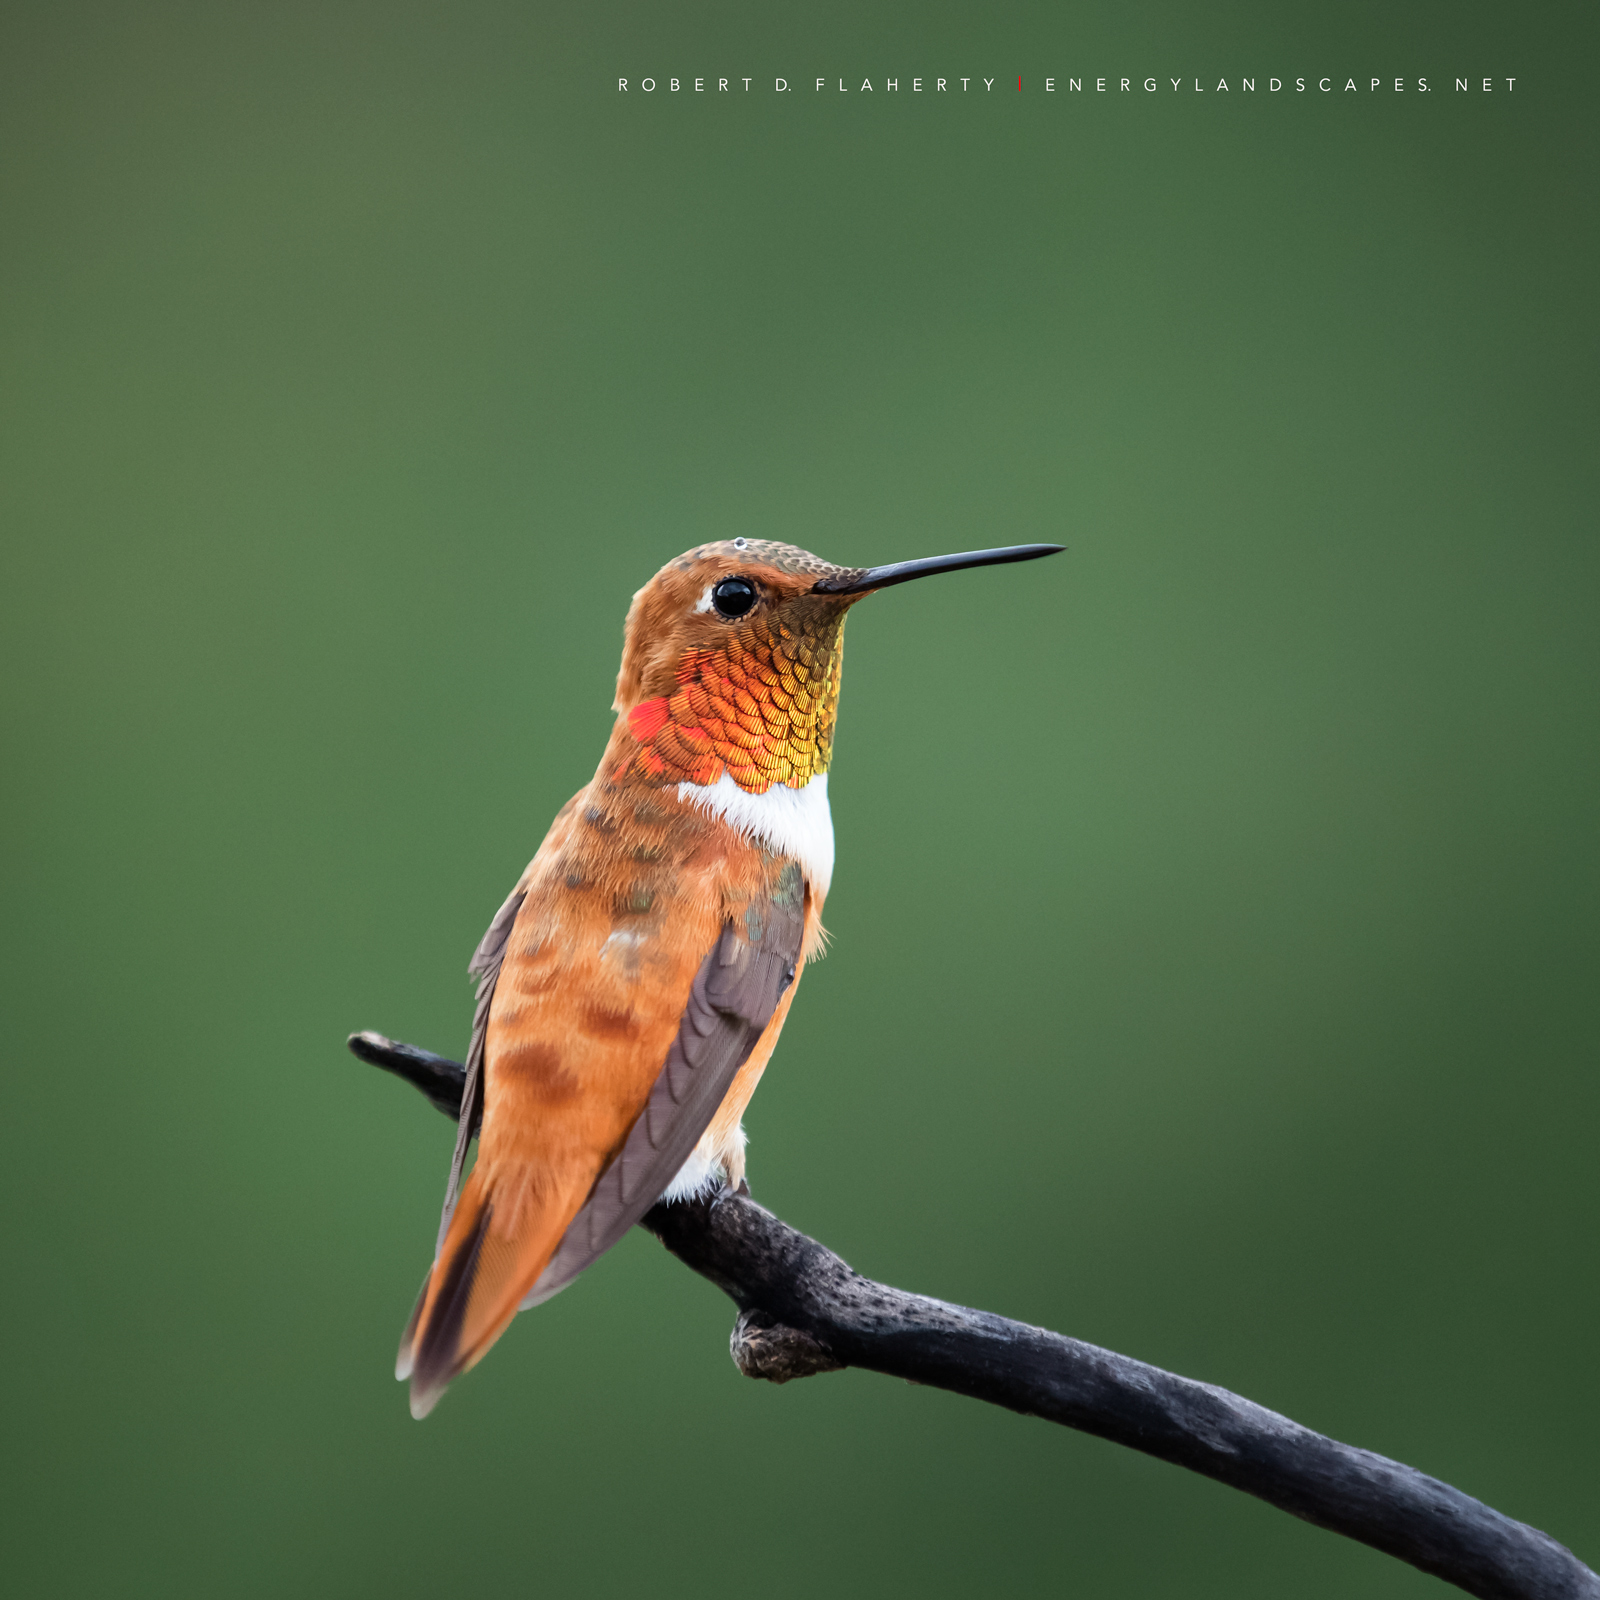 Summer, hummingbird, New Mexico, Ruidoso, New Mexico fine art landscape photography, South Central Mountains, photo